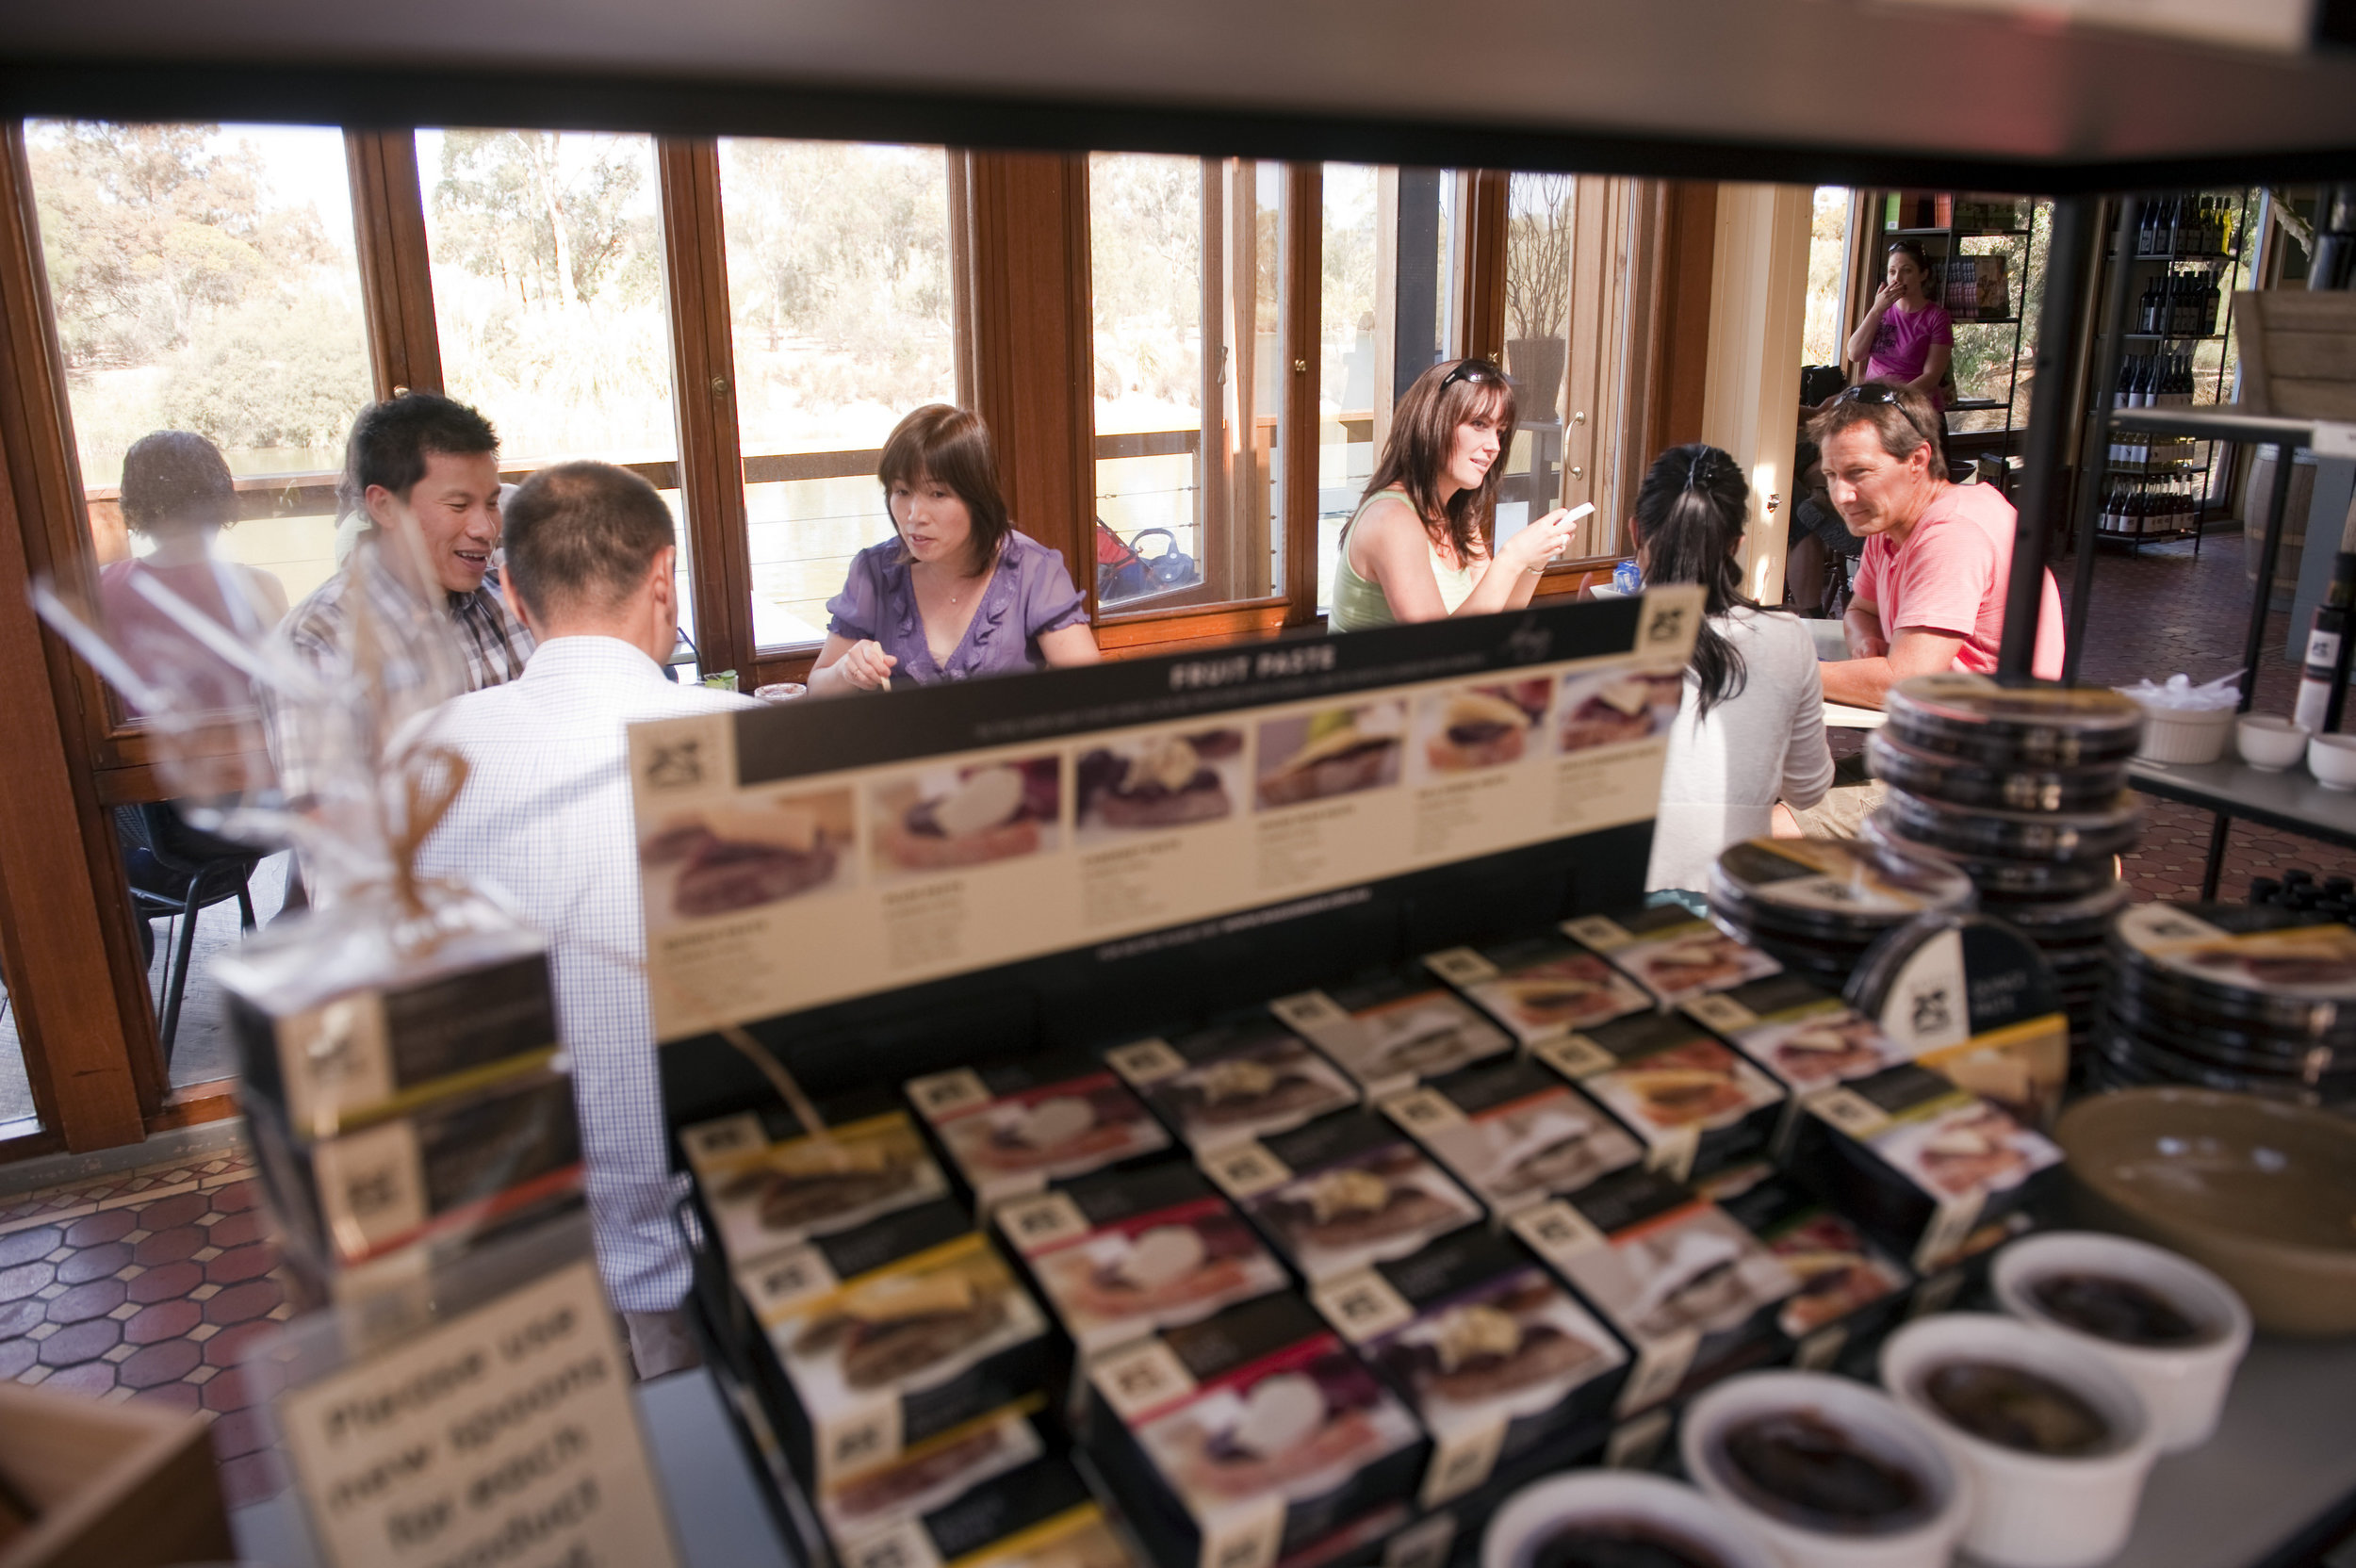 Sample the delicacies at Maggie Beer's Farm Shop